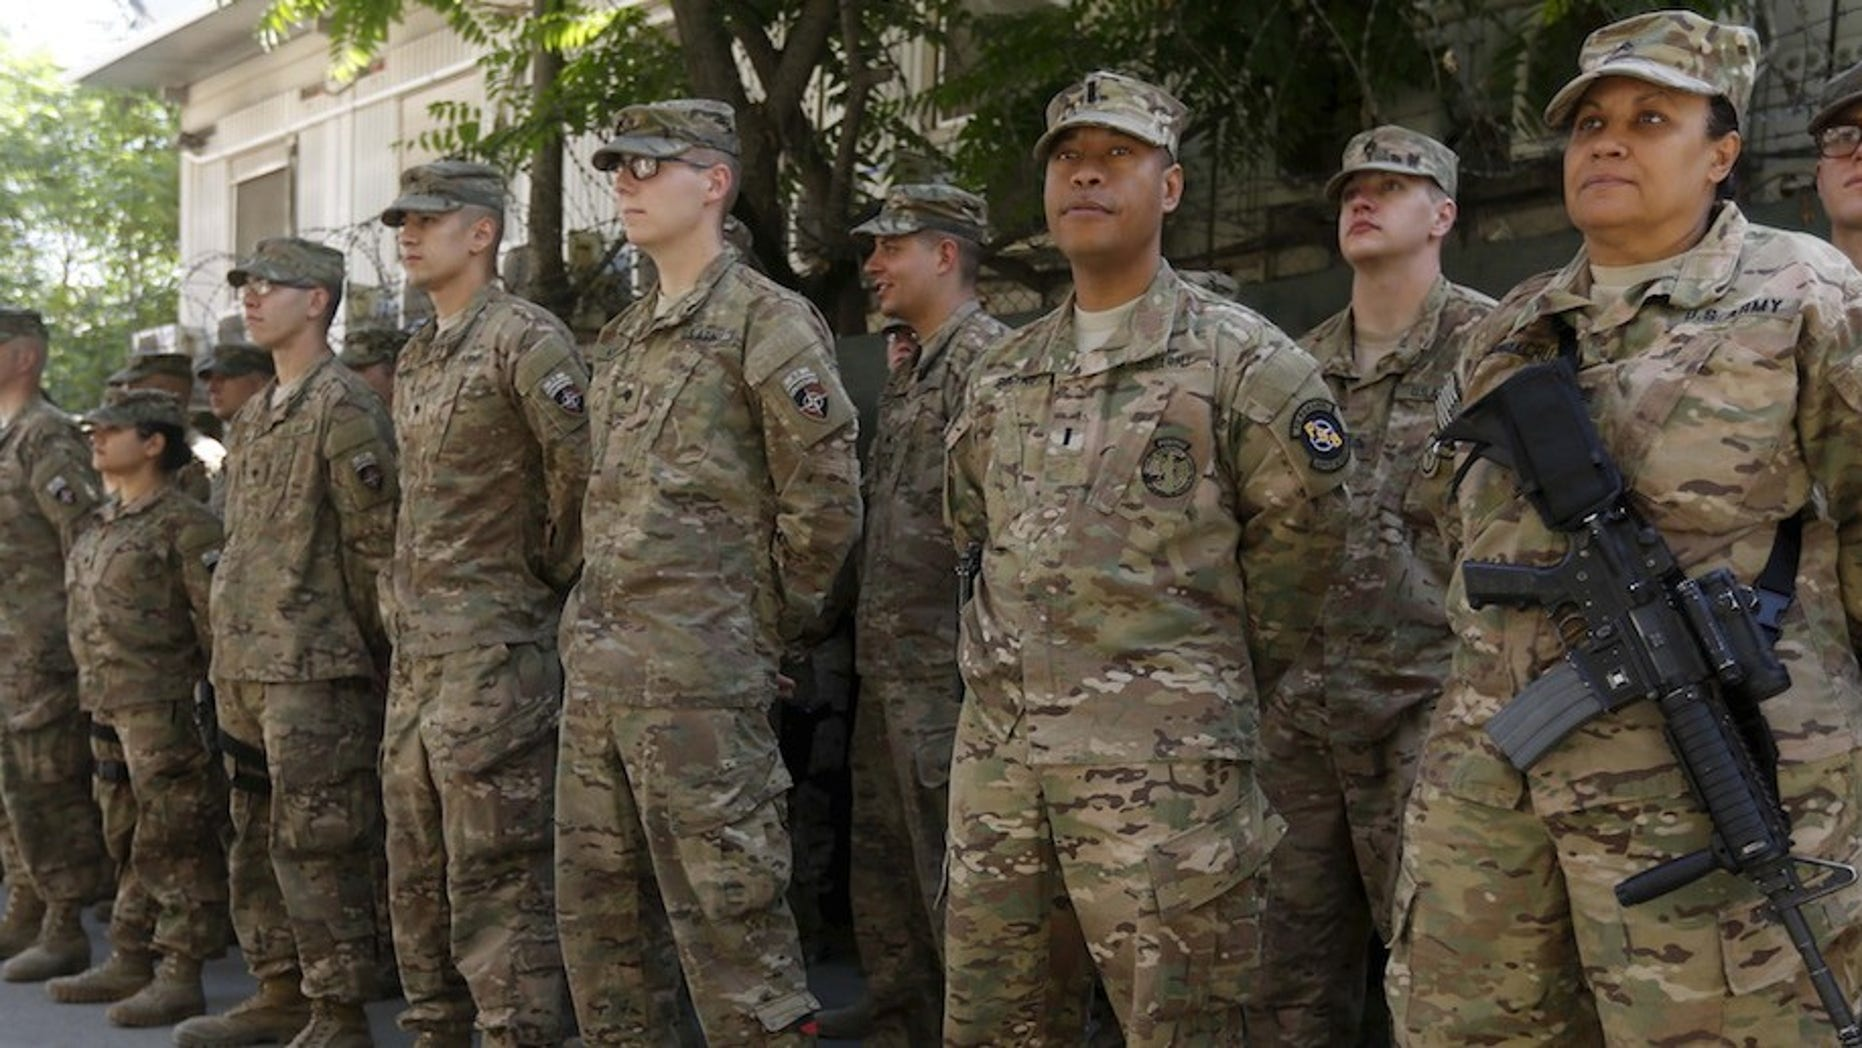 U.S. troops attend a ceremony to commemorate Memorial Day in Kabul, May 25, 2015. Memorial Day is observed annually in the U.S. on the last Monday of May to honor the nation's fallen members of the military. (REUTERS/Omar Sobhani)